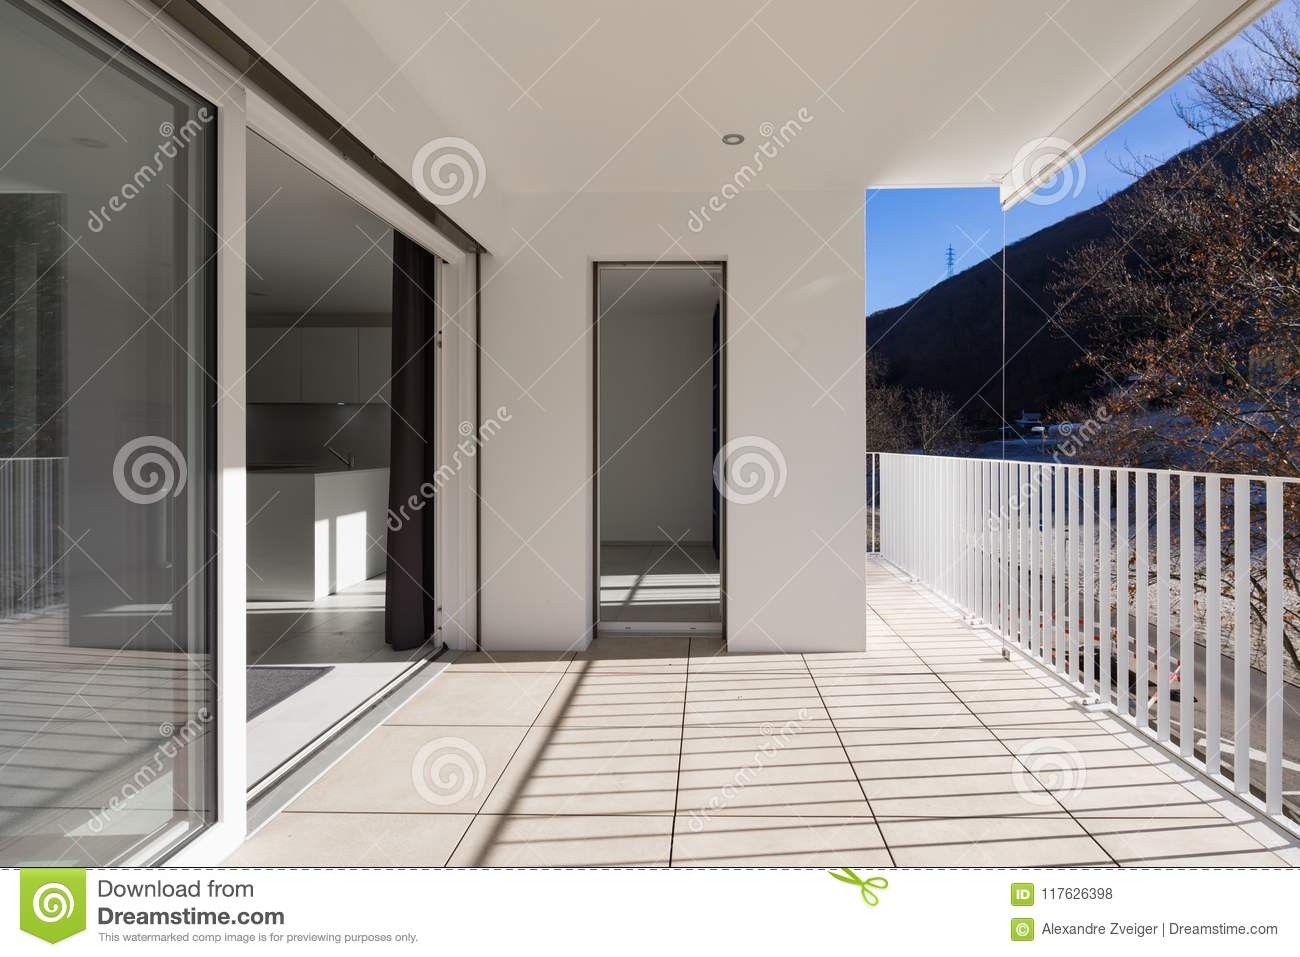 Modern house terrace with railing large plant outside the balcony blue sky frontal view